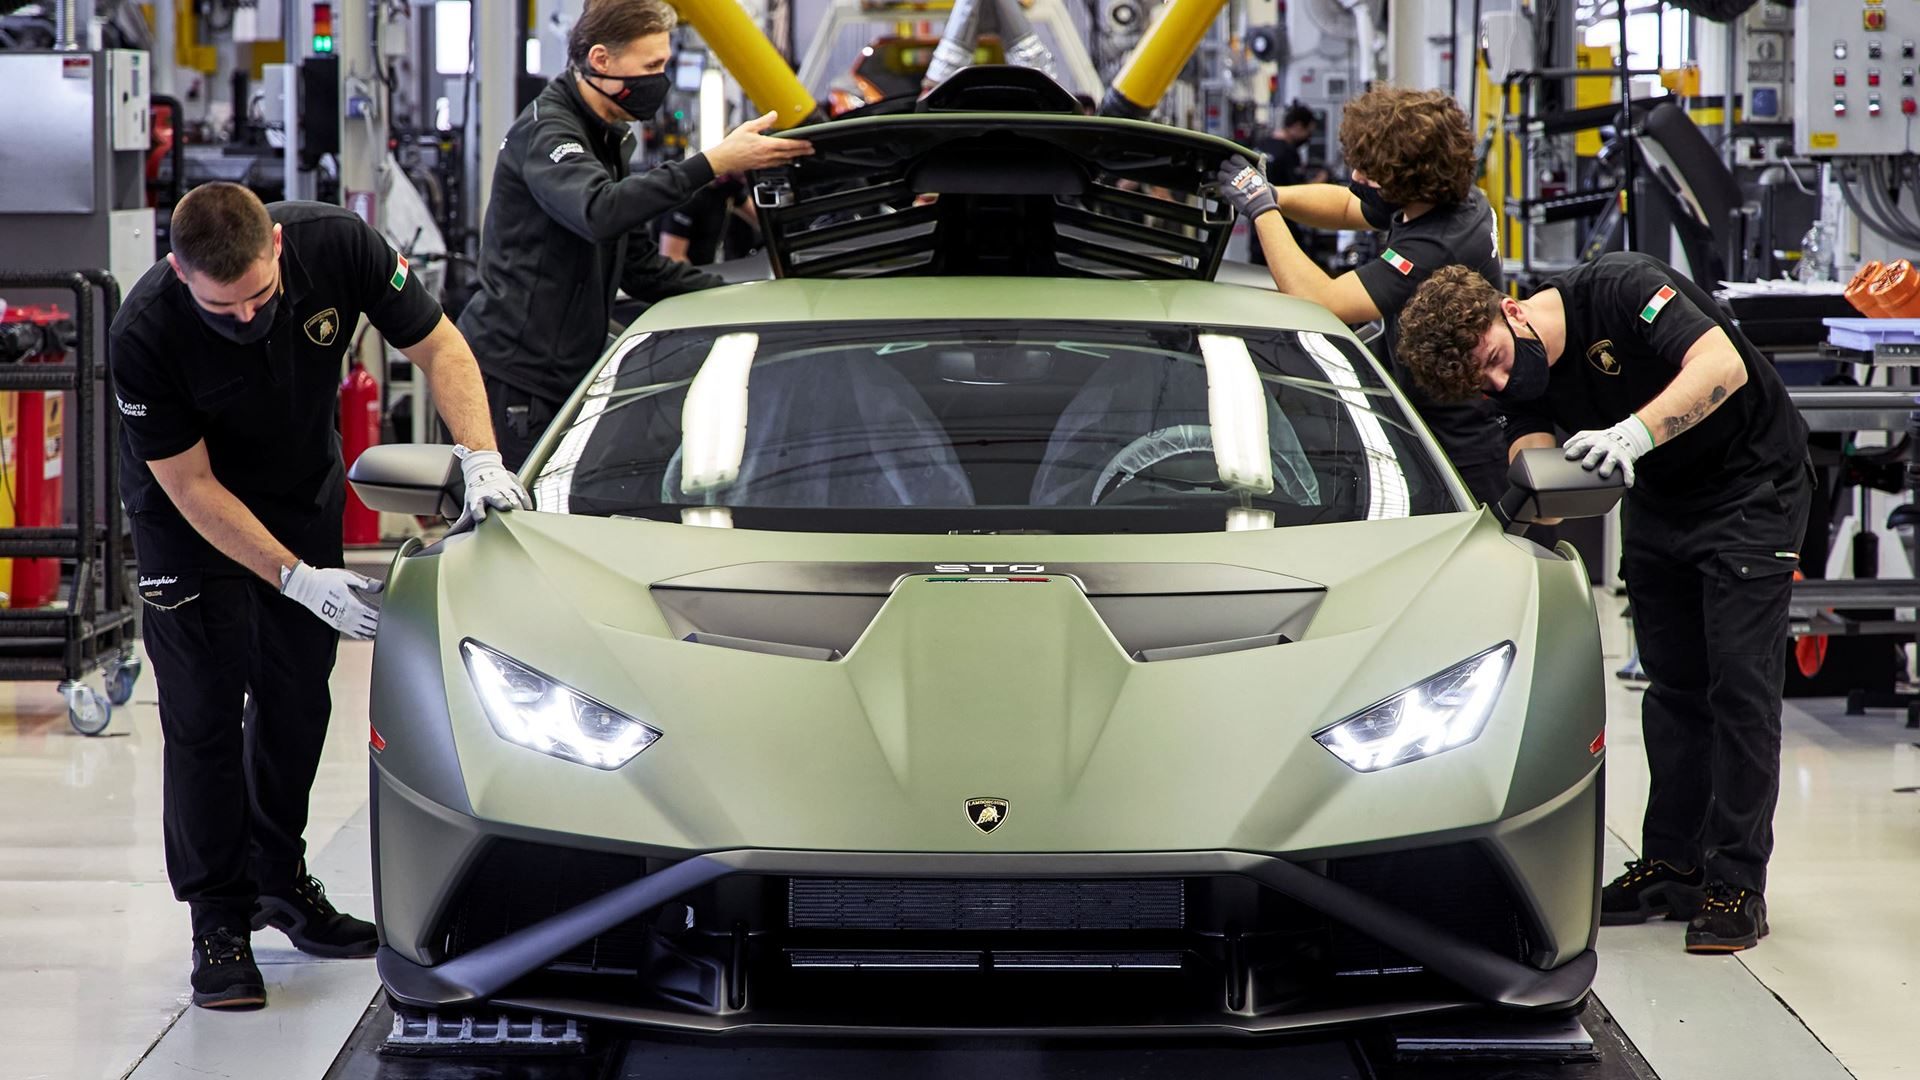 #Focu5on: Five surprising facts about the new Lamborghini Huracán STO - Image 2